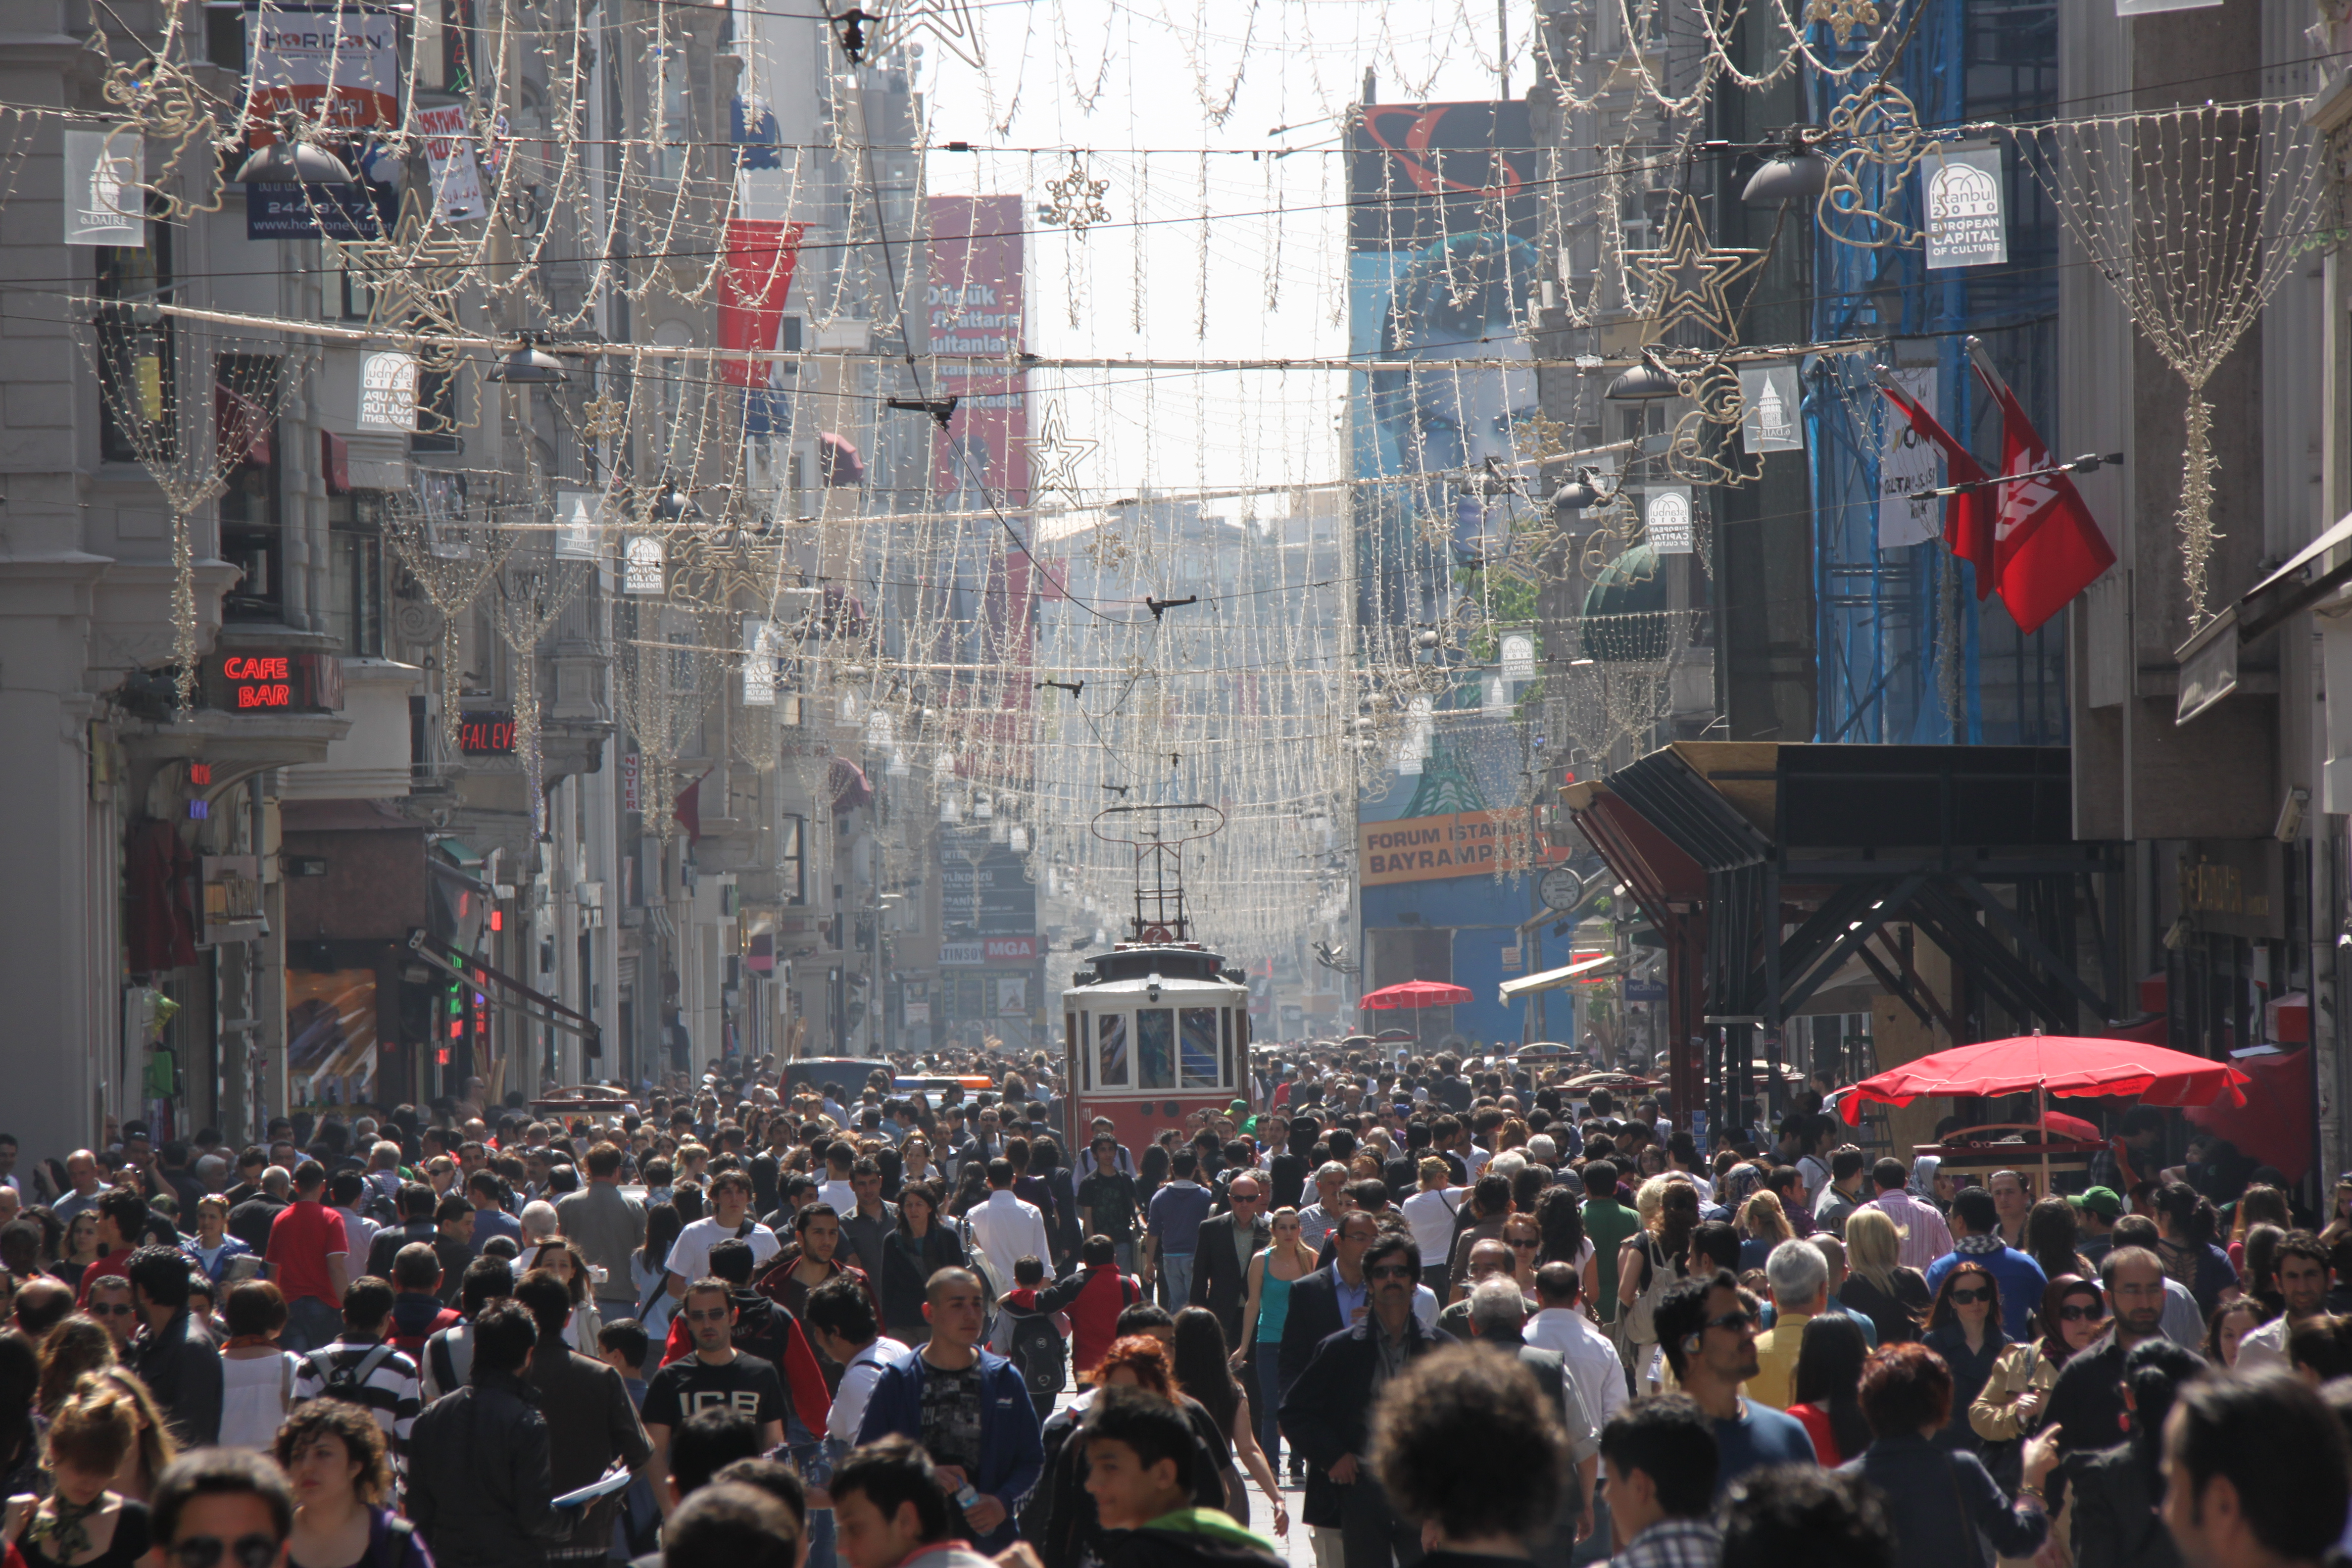 File:Istiklal busy afternoon.JPG - Wikimedia Commons